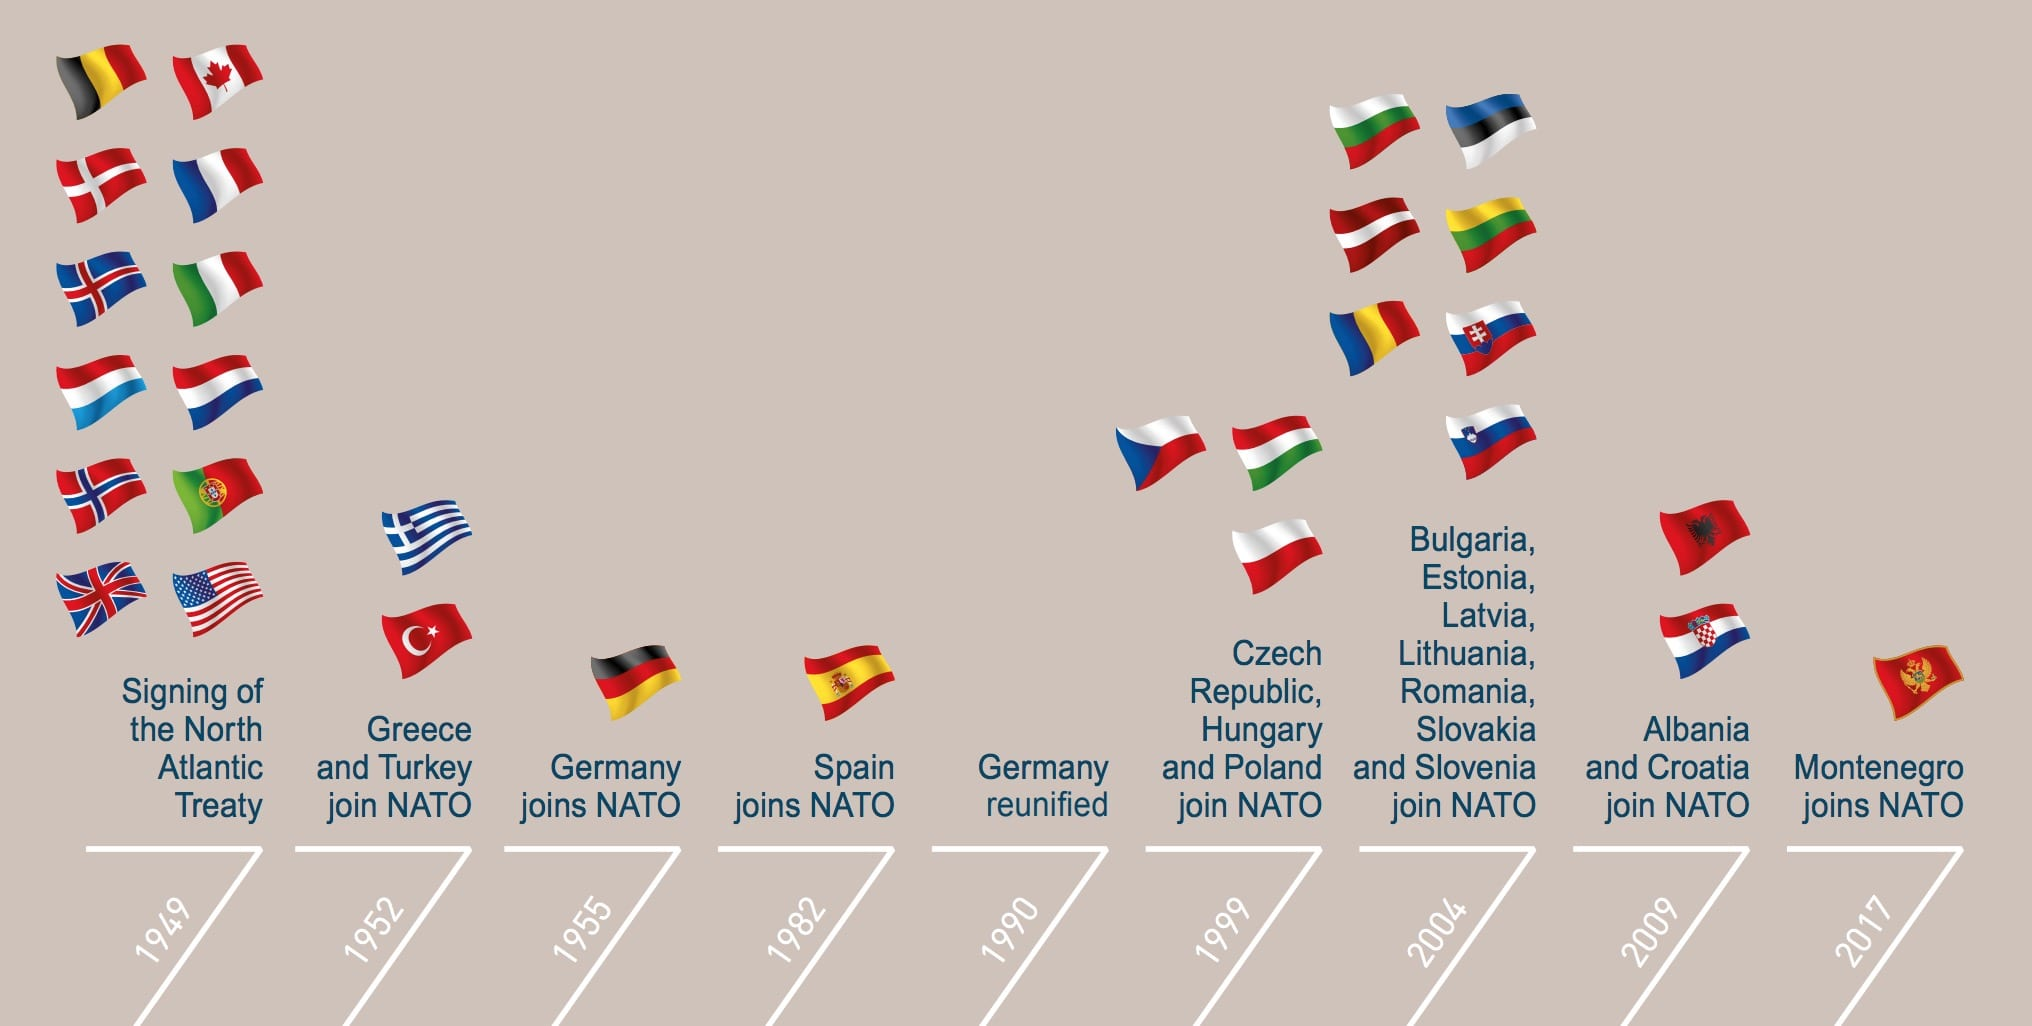 Image NATO member countries by year - Graphic from NATO 2018 Annual Report